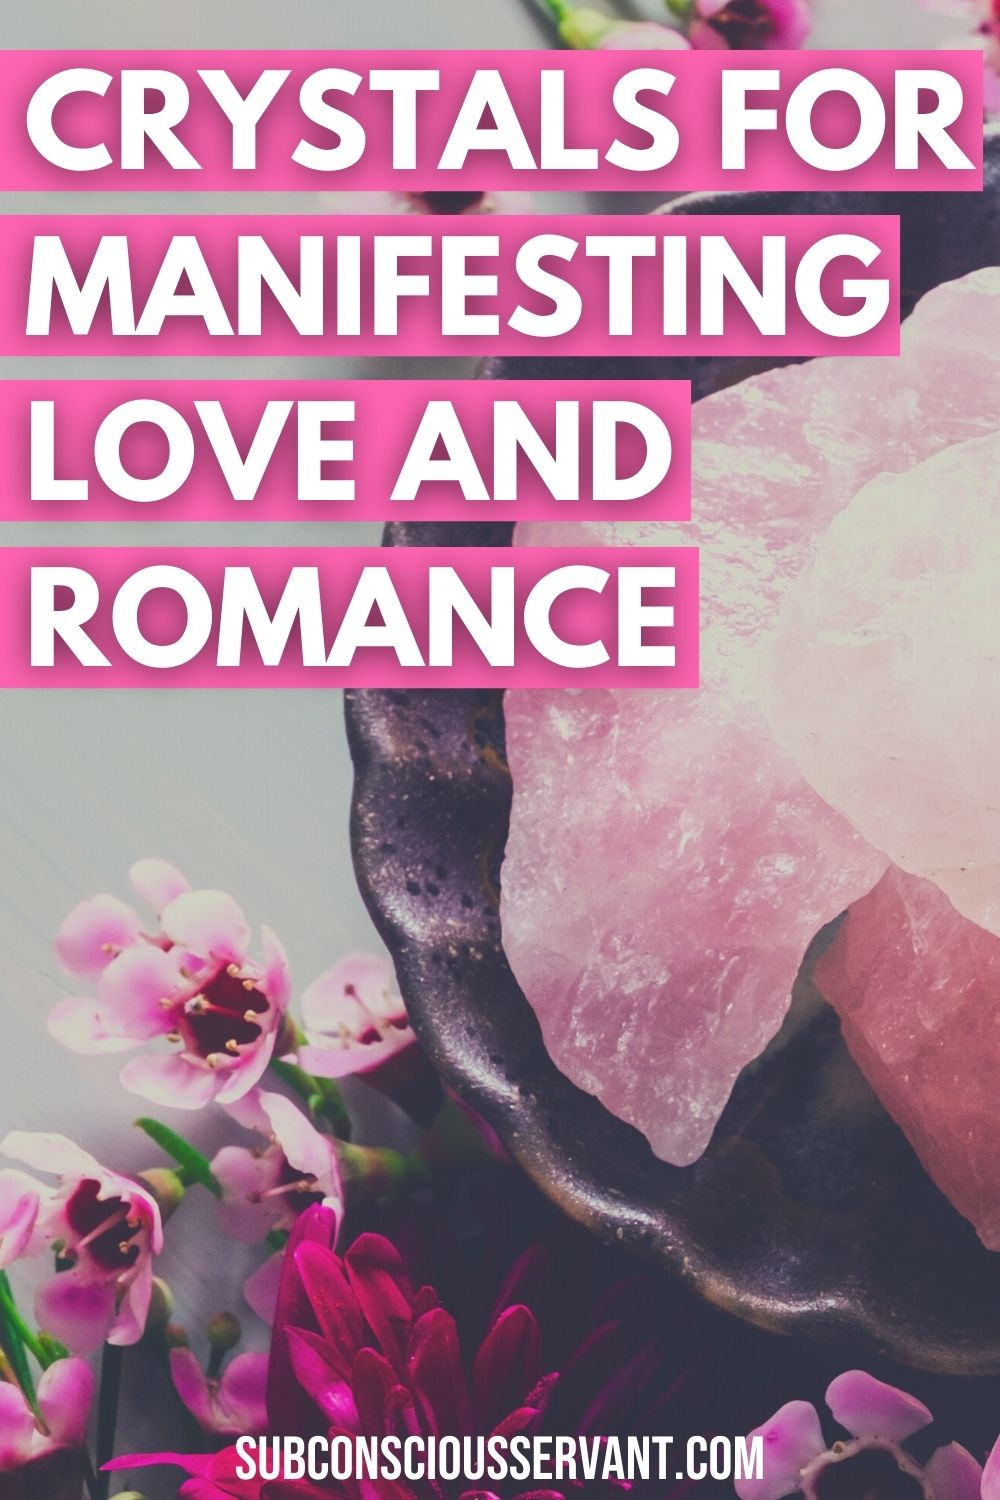 Crystals For Manifesting Love And Romance (The 17 Best Ones)